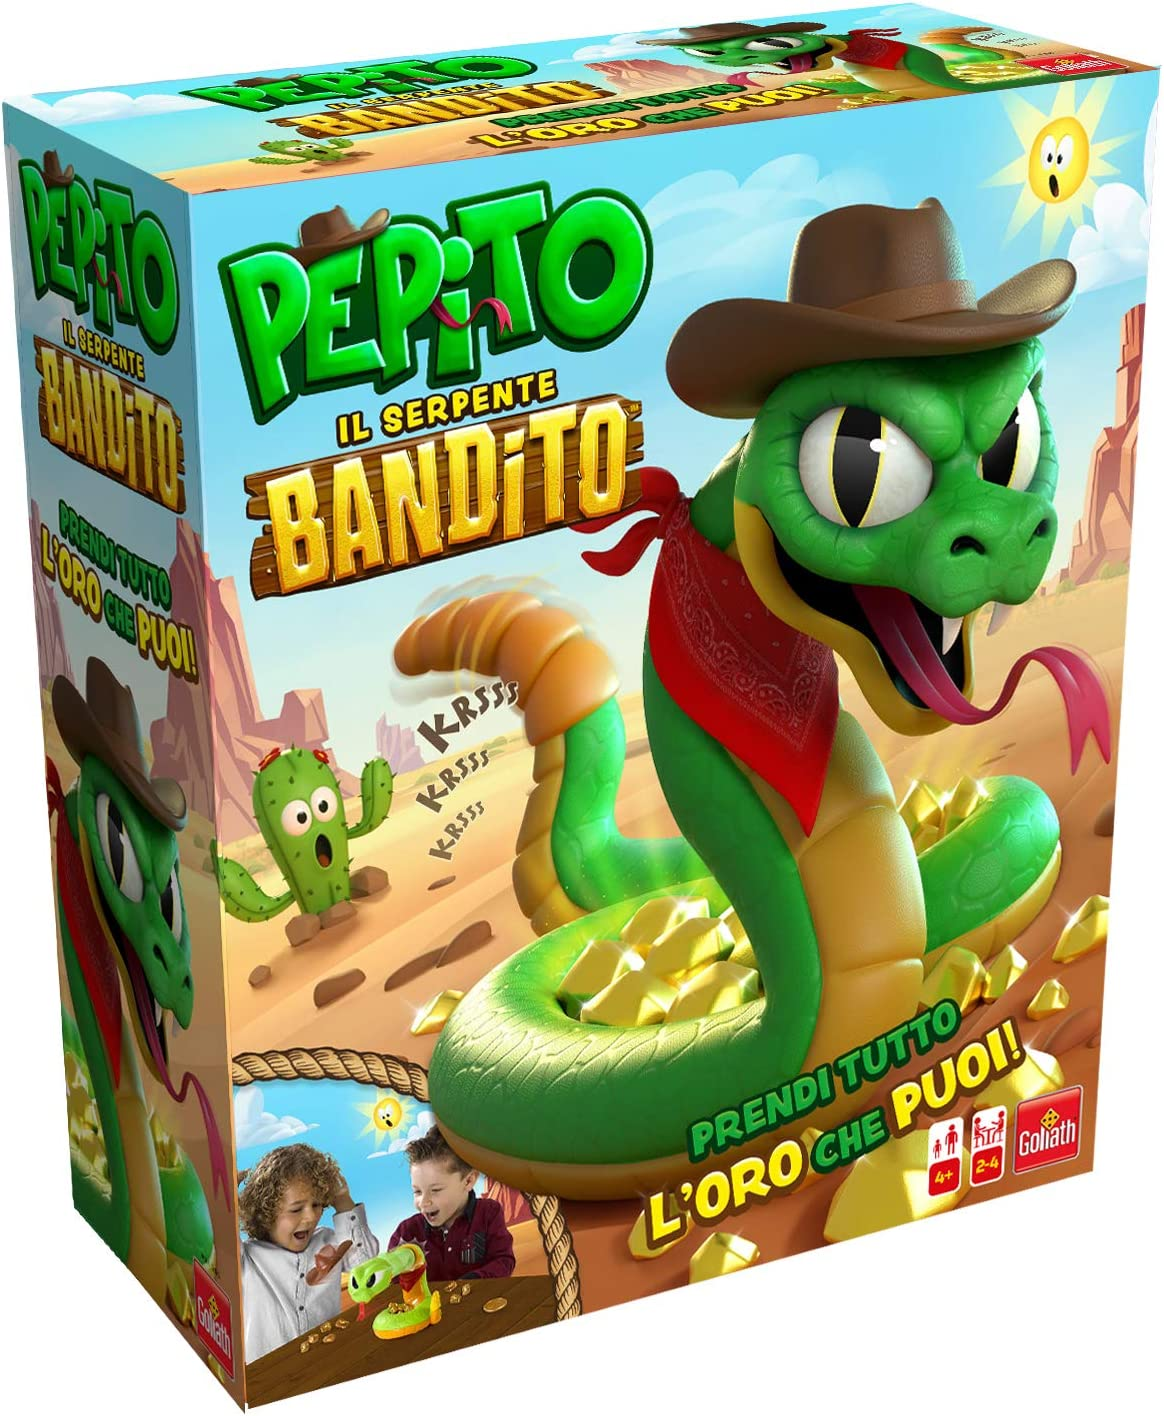 GOLIATH Clearance SALE Limited time Free shipping anywhere in the nation - Pepito Bandit The